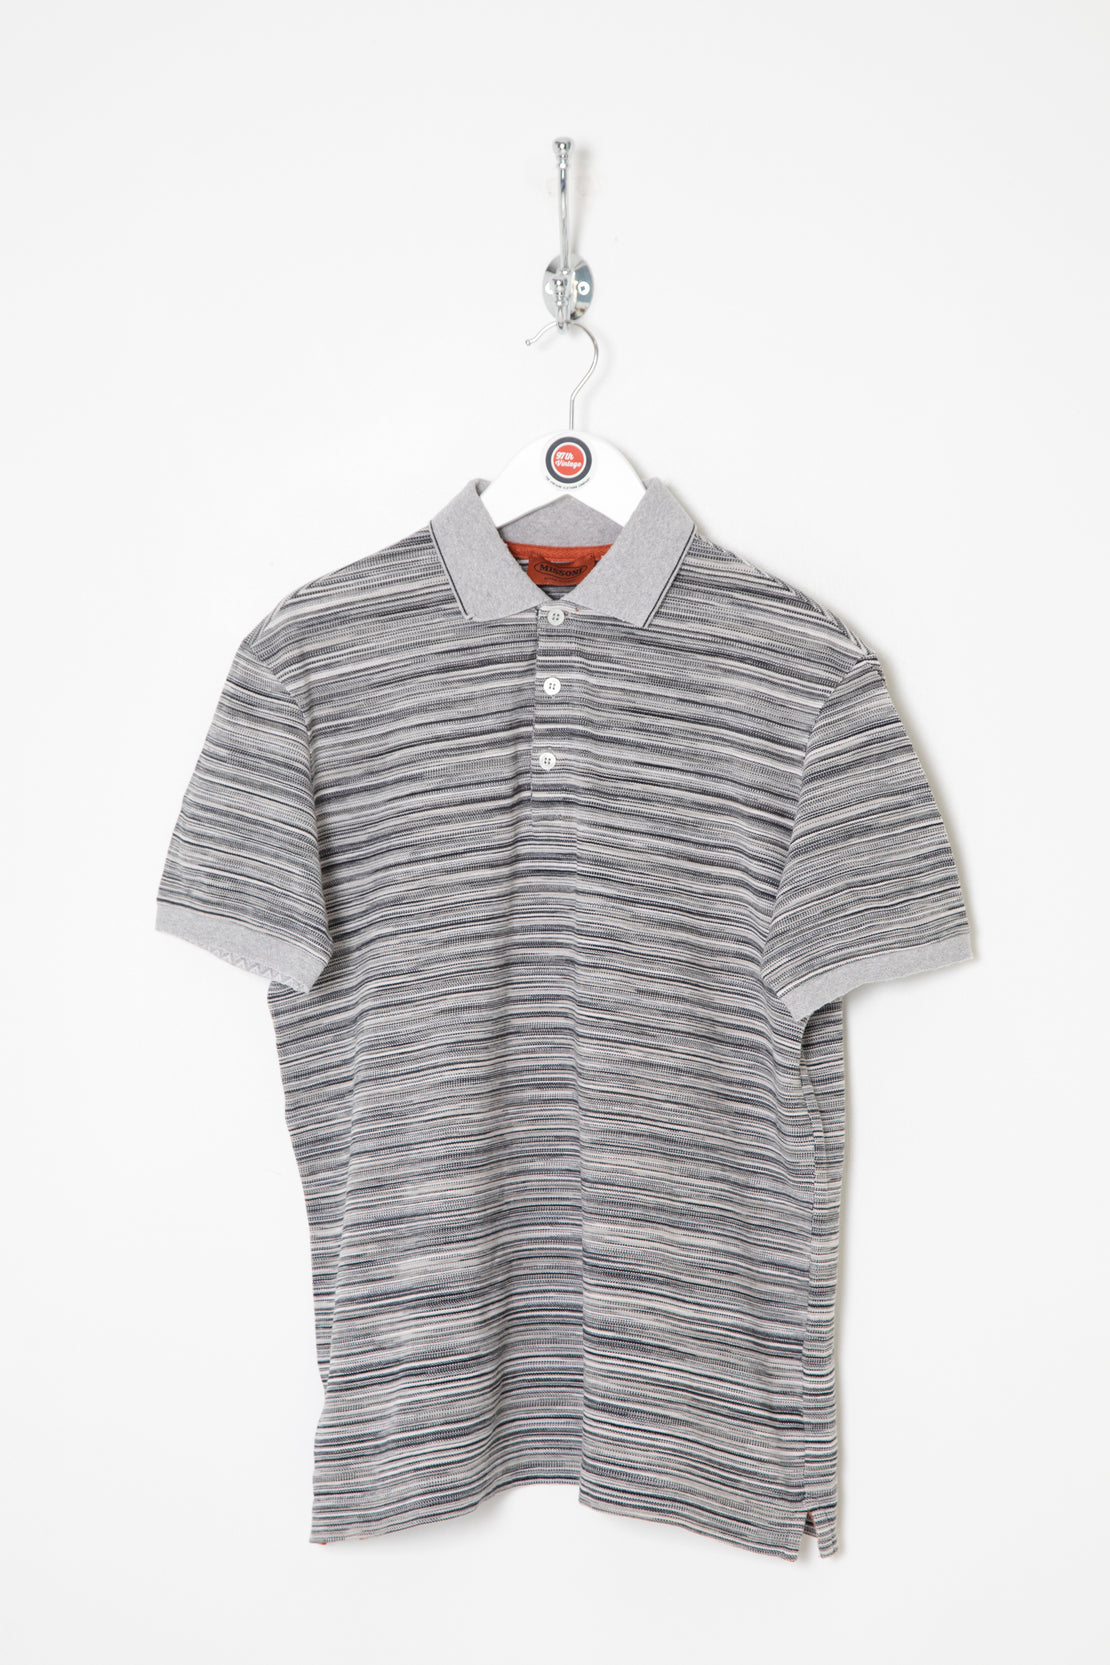 Missoni Polo Shirt (S)